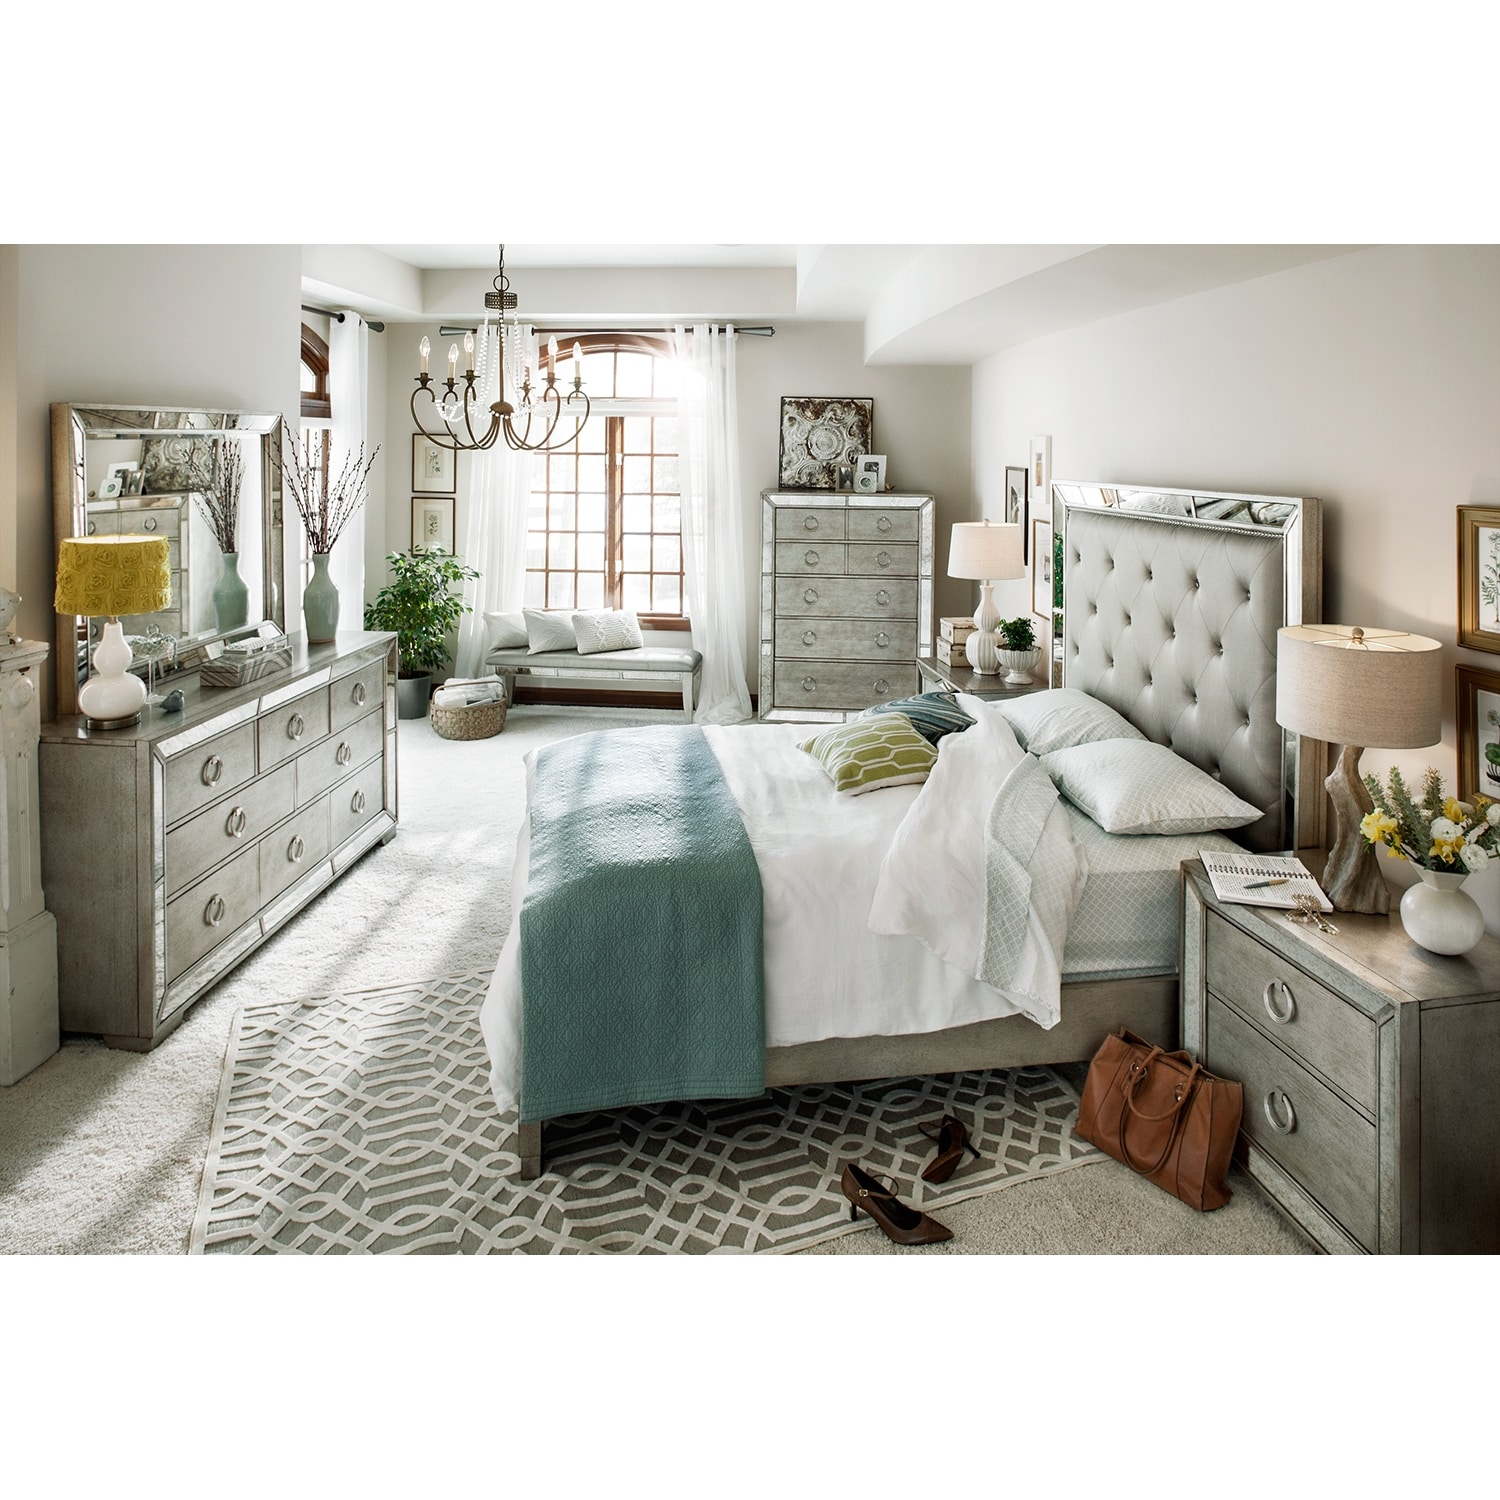 edlp 119999 6008031 orig edlp 119999 gator piece queen bedroom set